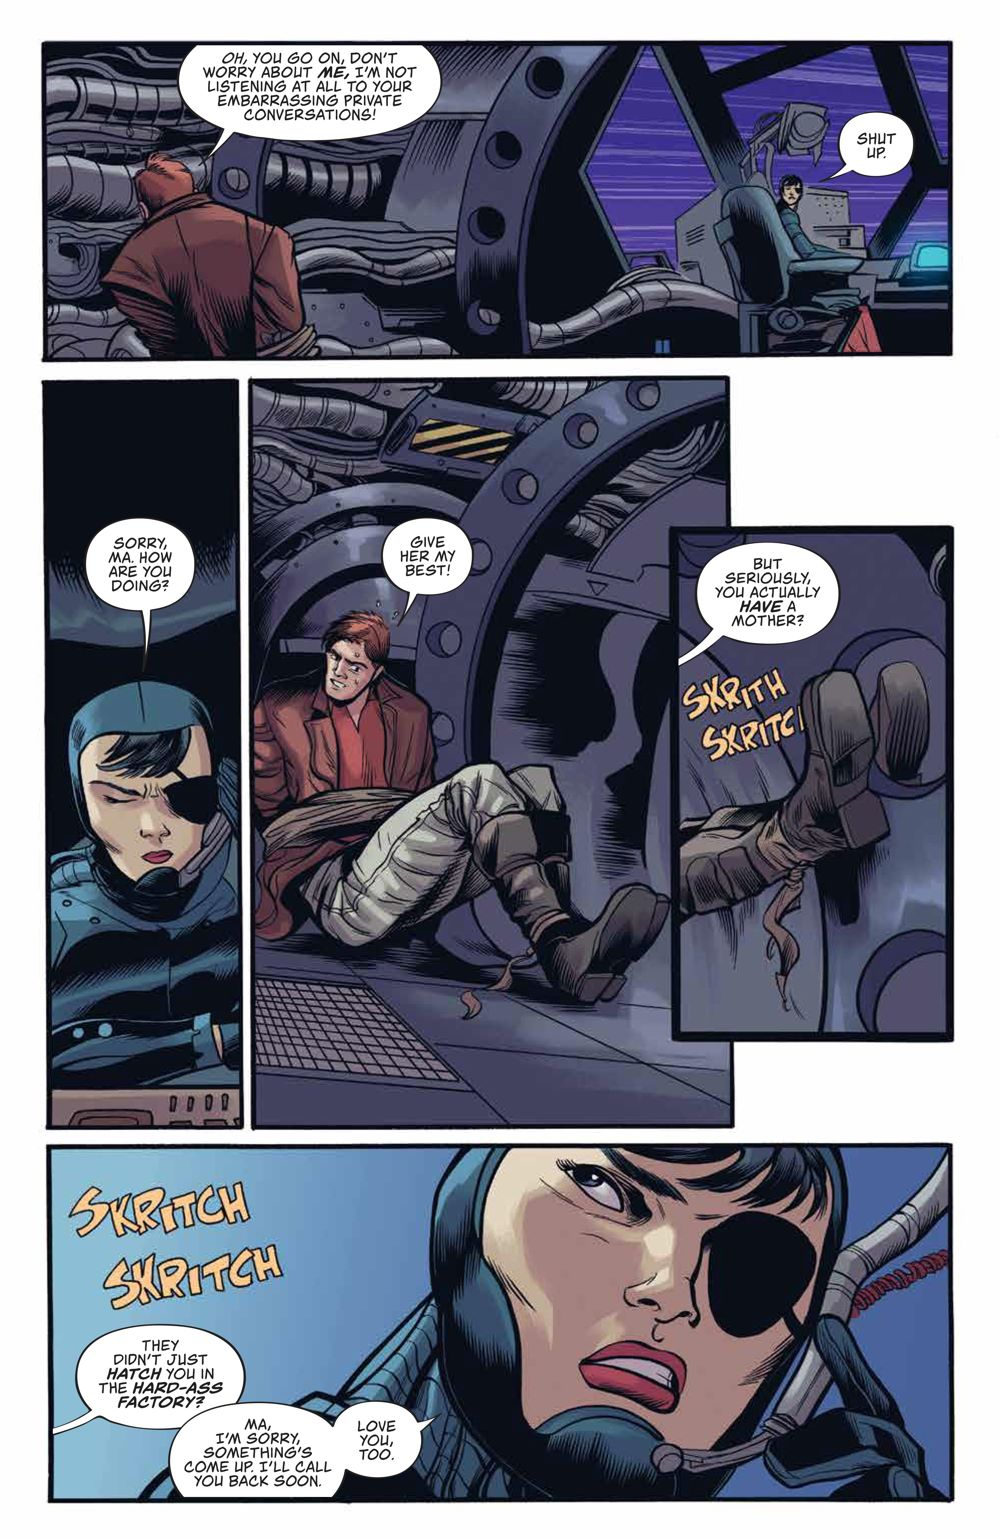 Firefly_UnificationWar_v2_SC_PRESS_19 ComicList Previews: FIREFLY THE UNIFICATION WAR VOLUME 2 TP